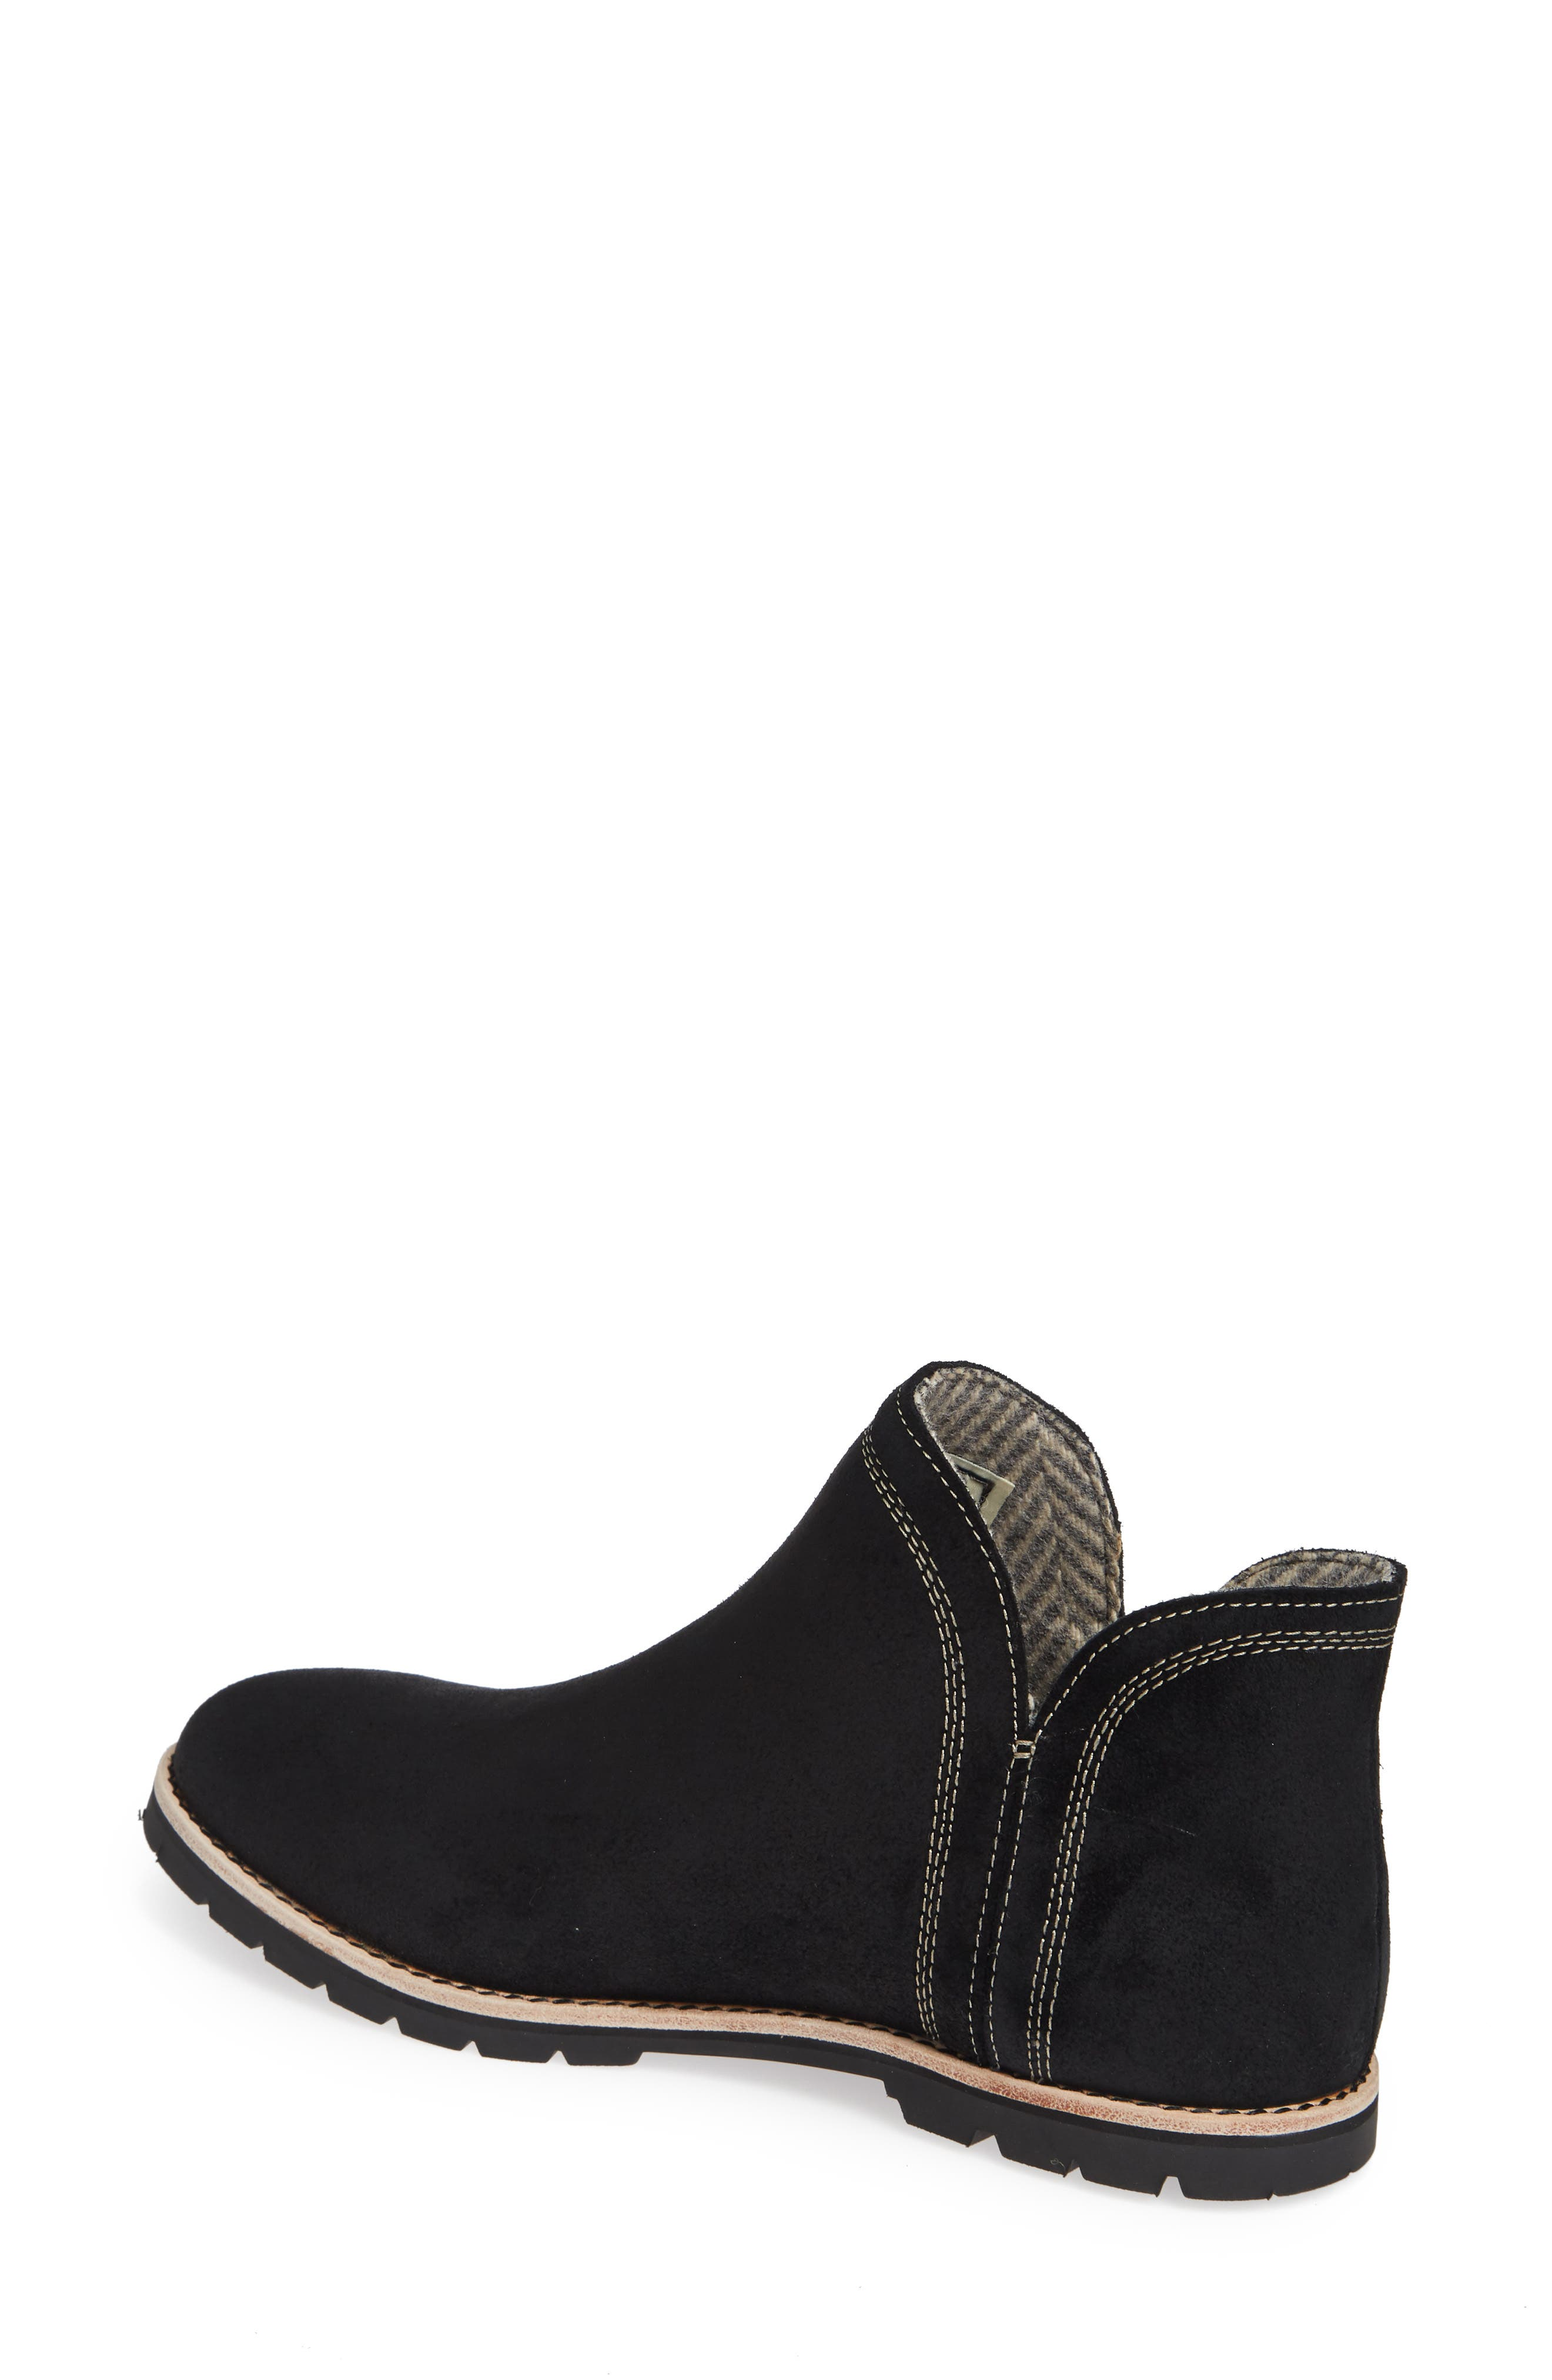 Bly Waterproof Bootie,                             Alternate thumbnail 2, color,                             BLACK SUEDE